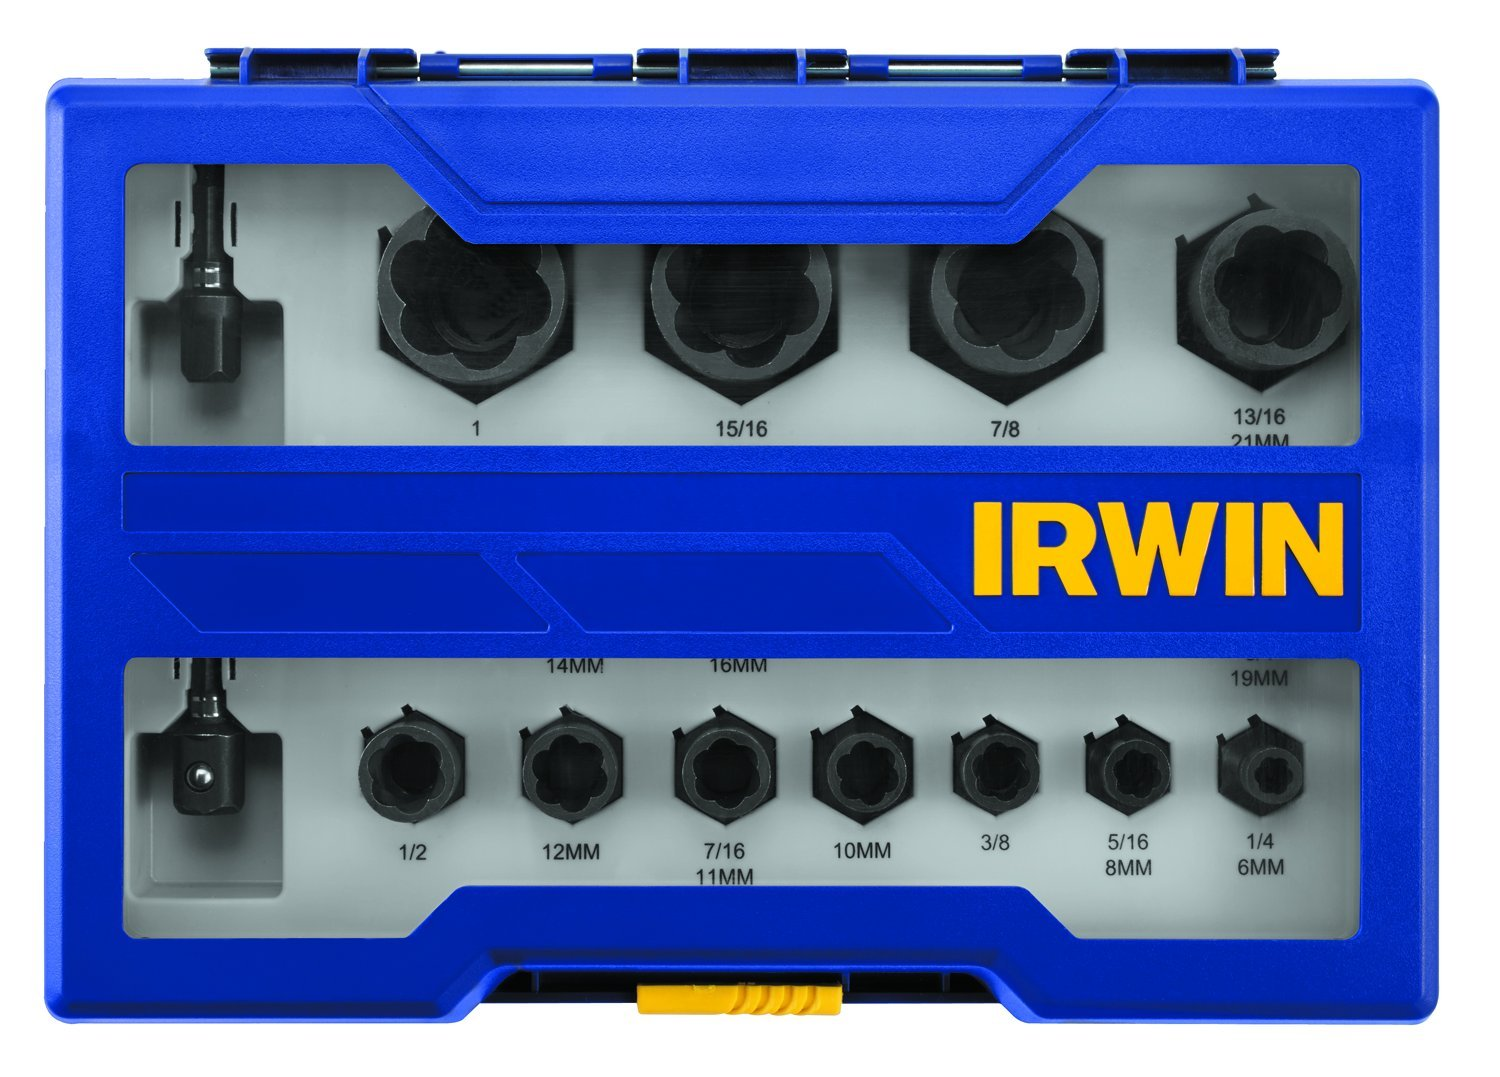 Bolt-Grip 1859152 Irwin Tools Impact Performance Series Bolt Grip Bolt Extractor with 19-Piece Set with 1/4-Inch Hex Adapters by Irwin Tools (Image #1)